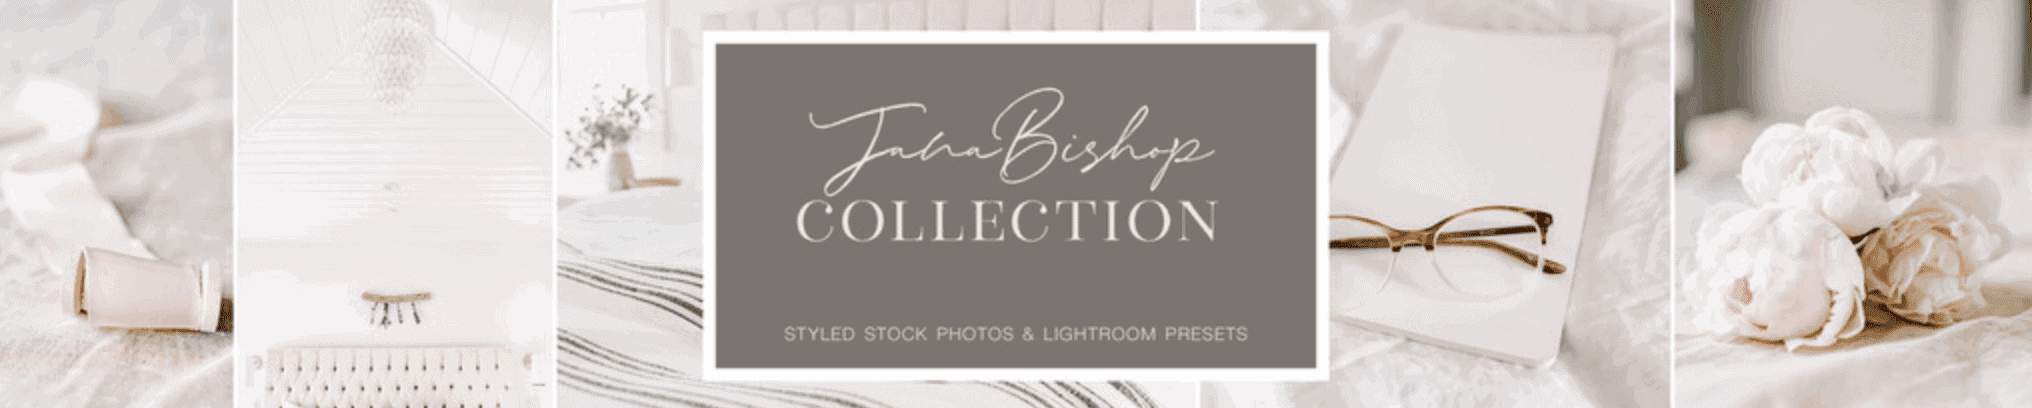 Jana Bishop Collection | kimschob.com